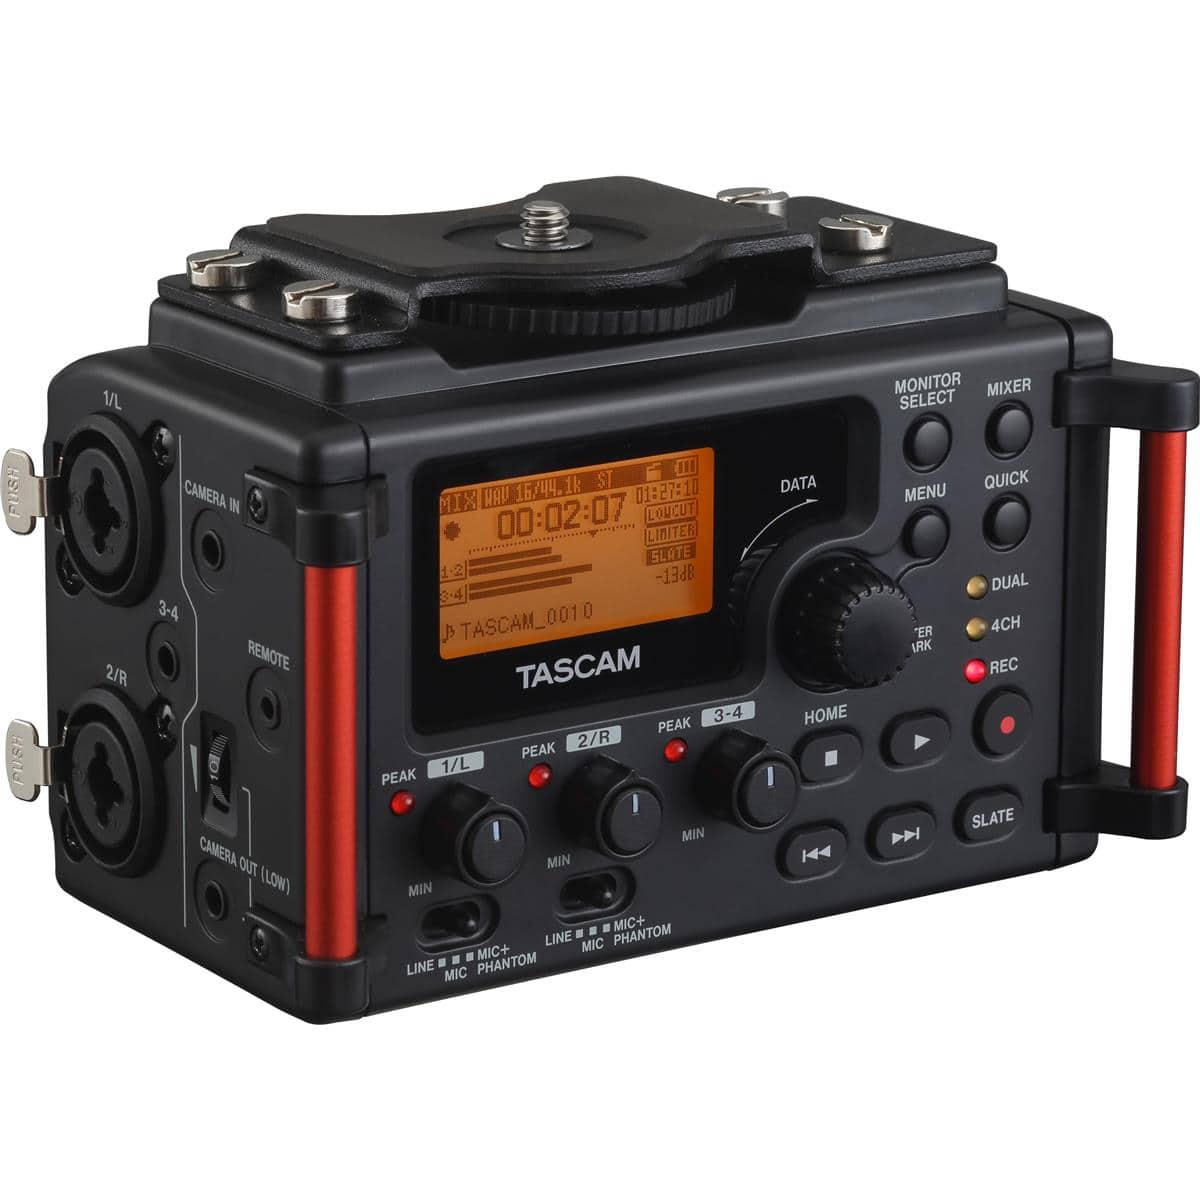 Tascam DR-60D MKII Portable Audio Recorder for DSLR Cameras  $125 after $30 Rebate + Free S/H